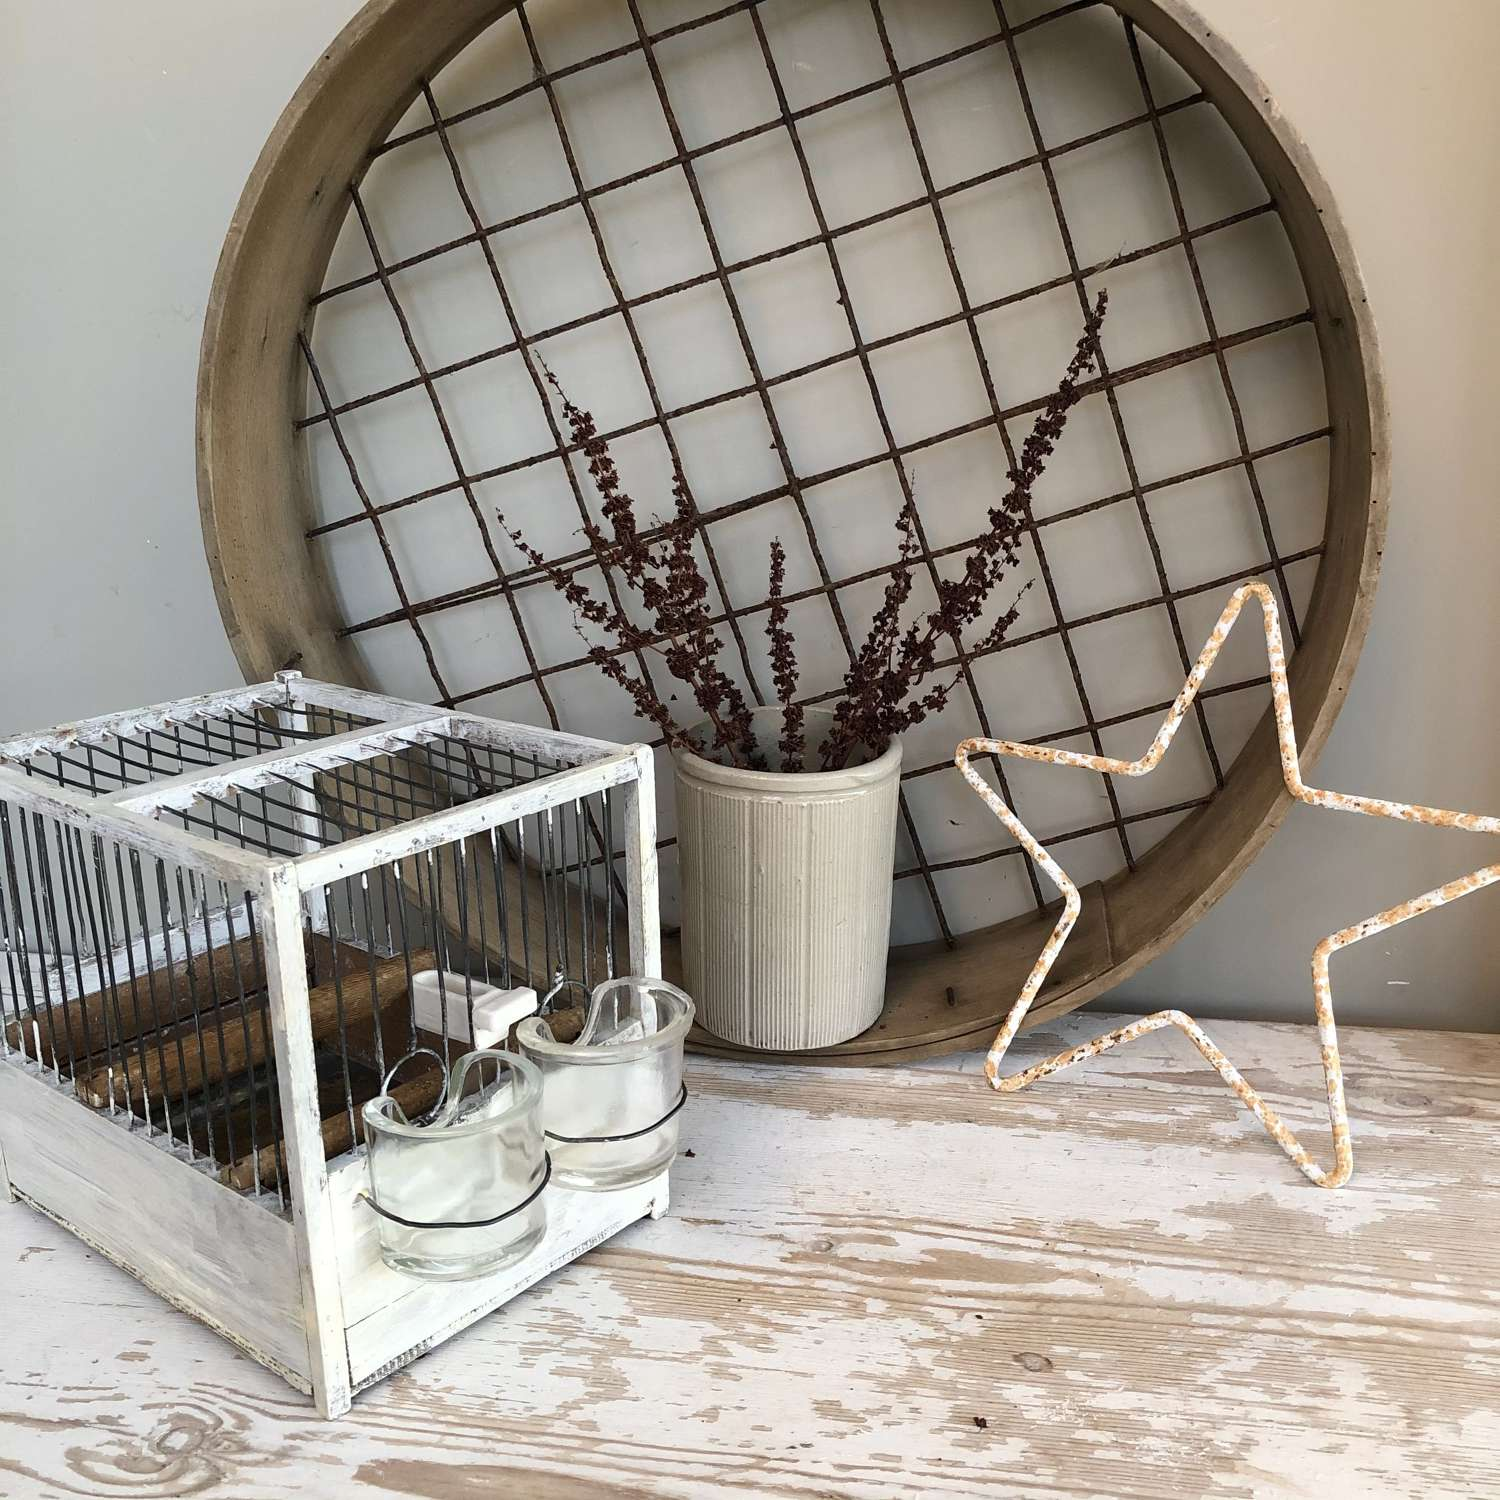 Vintage Songbird cages